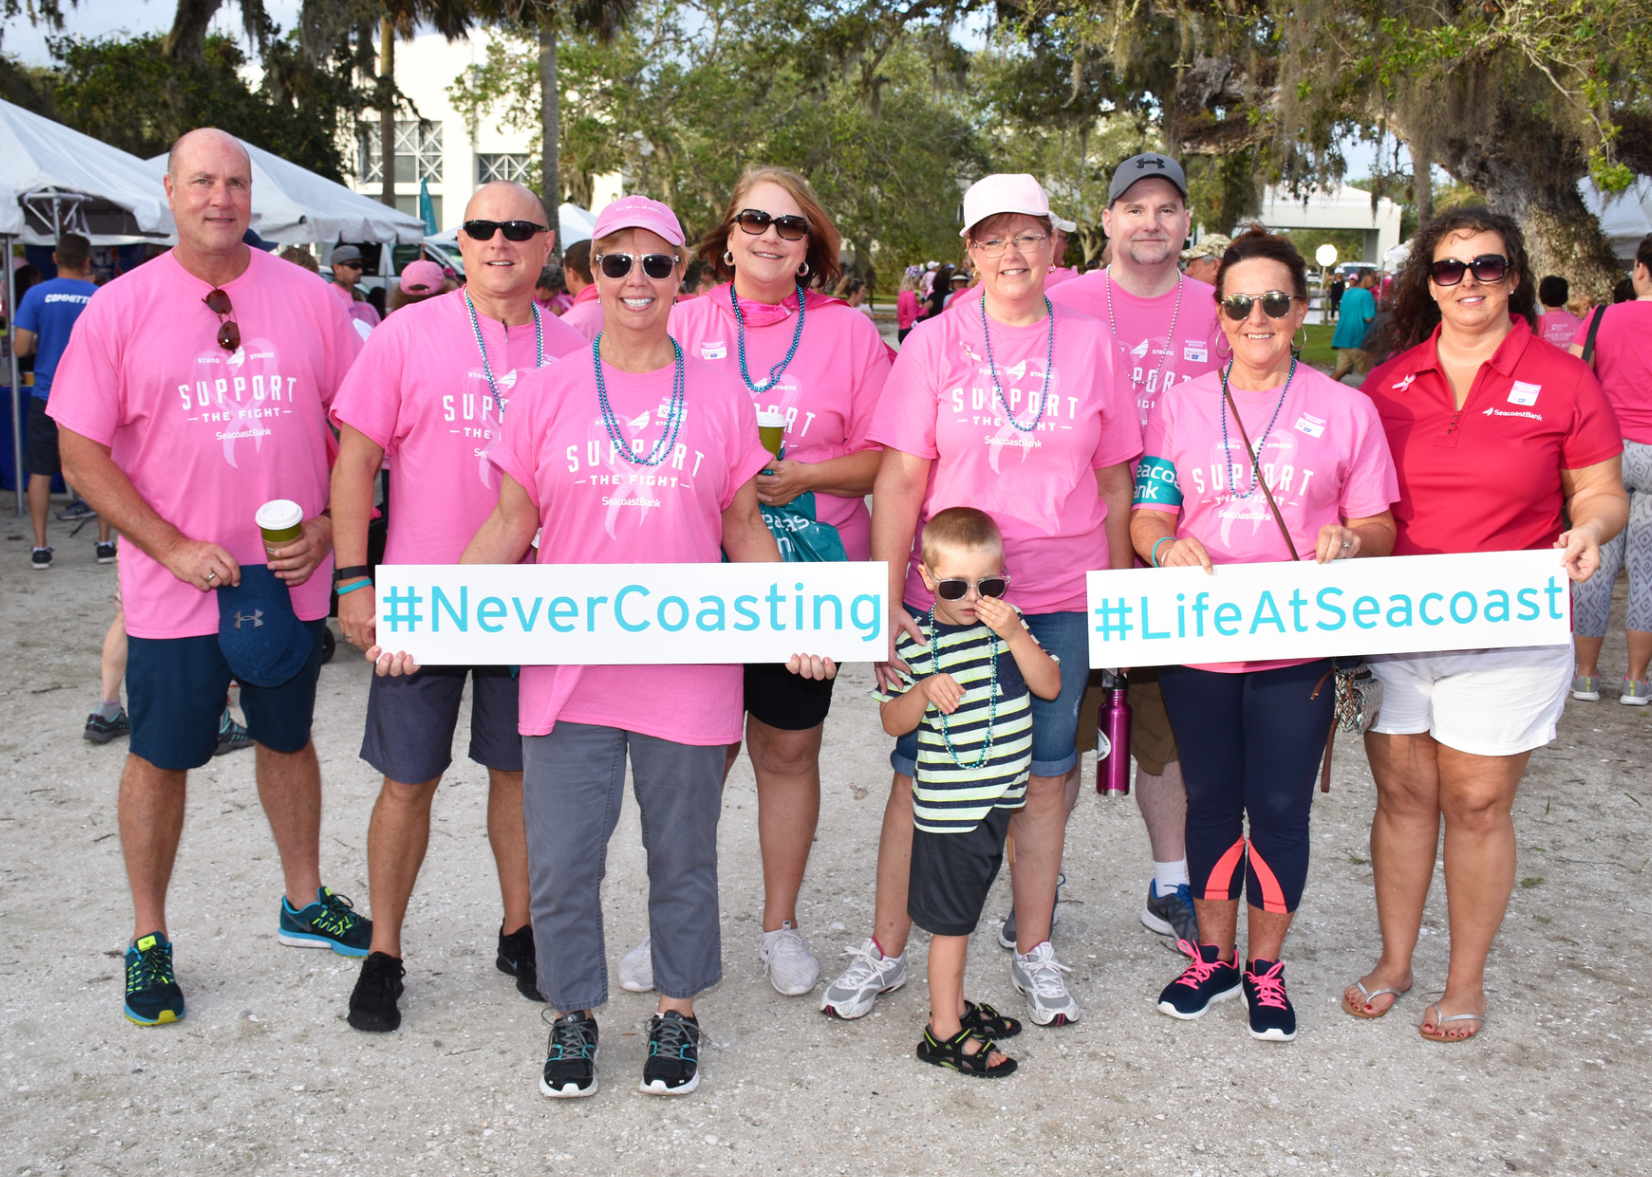 AMERICAN CANCER SOCIETY ANNOUNCES SEACOAST BANK AS REGIONAL SPONSOR FOR MAKING STRIDES EVENTS ACROSS EIGHT COMMUNITIES IN FLORIDA